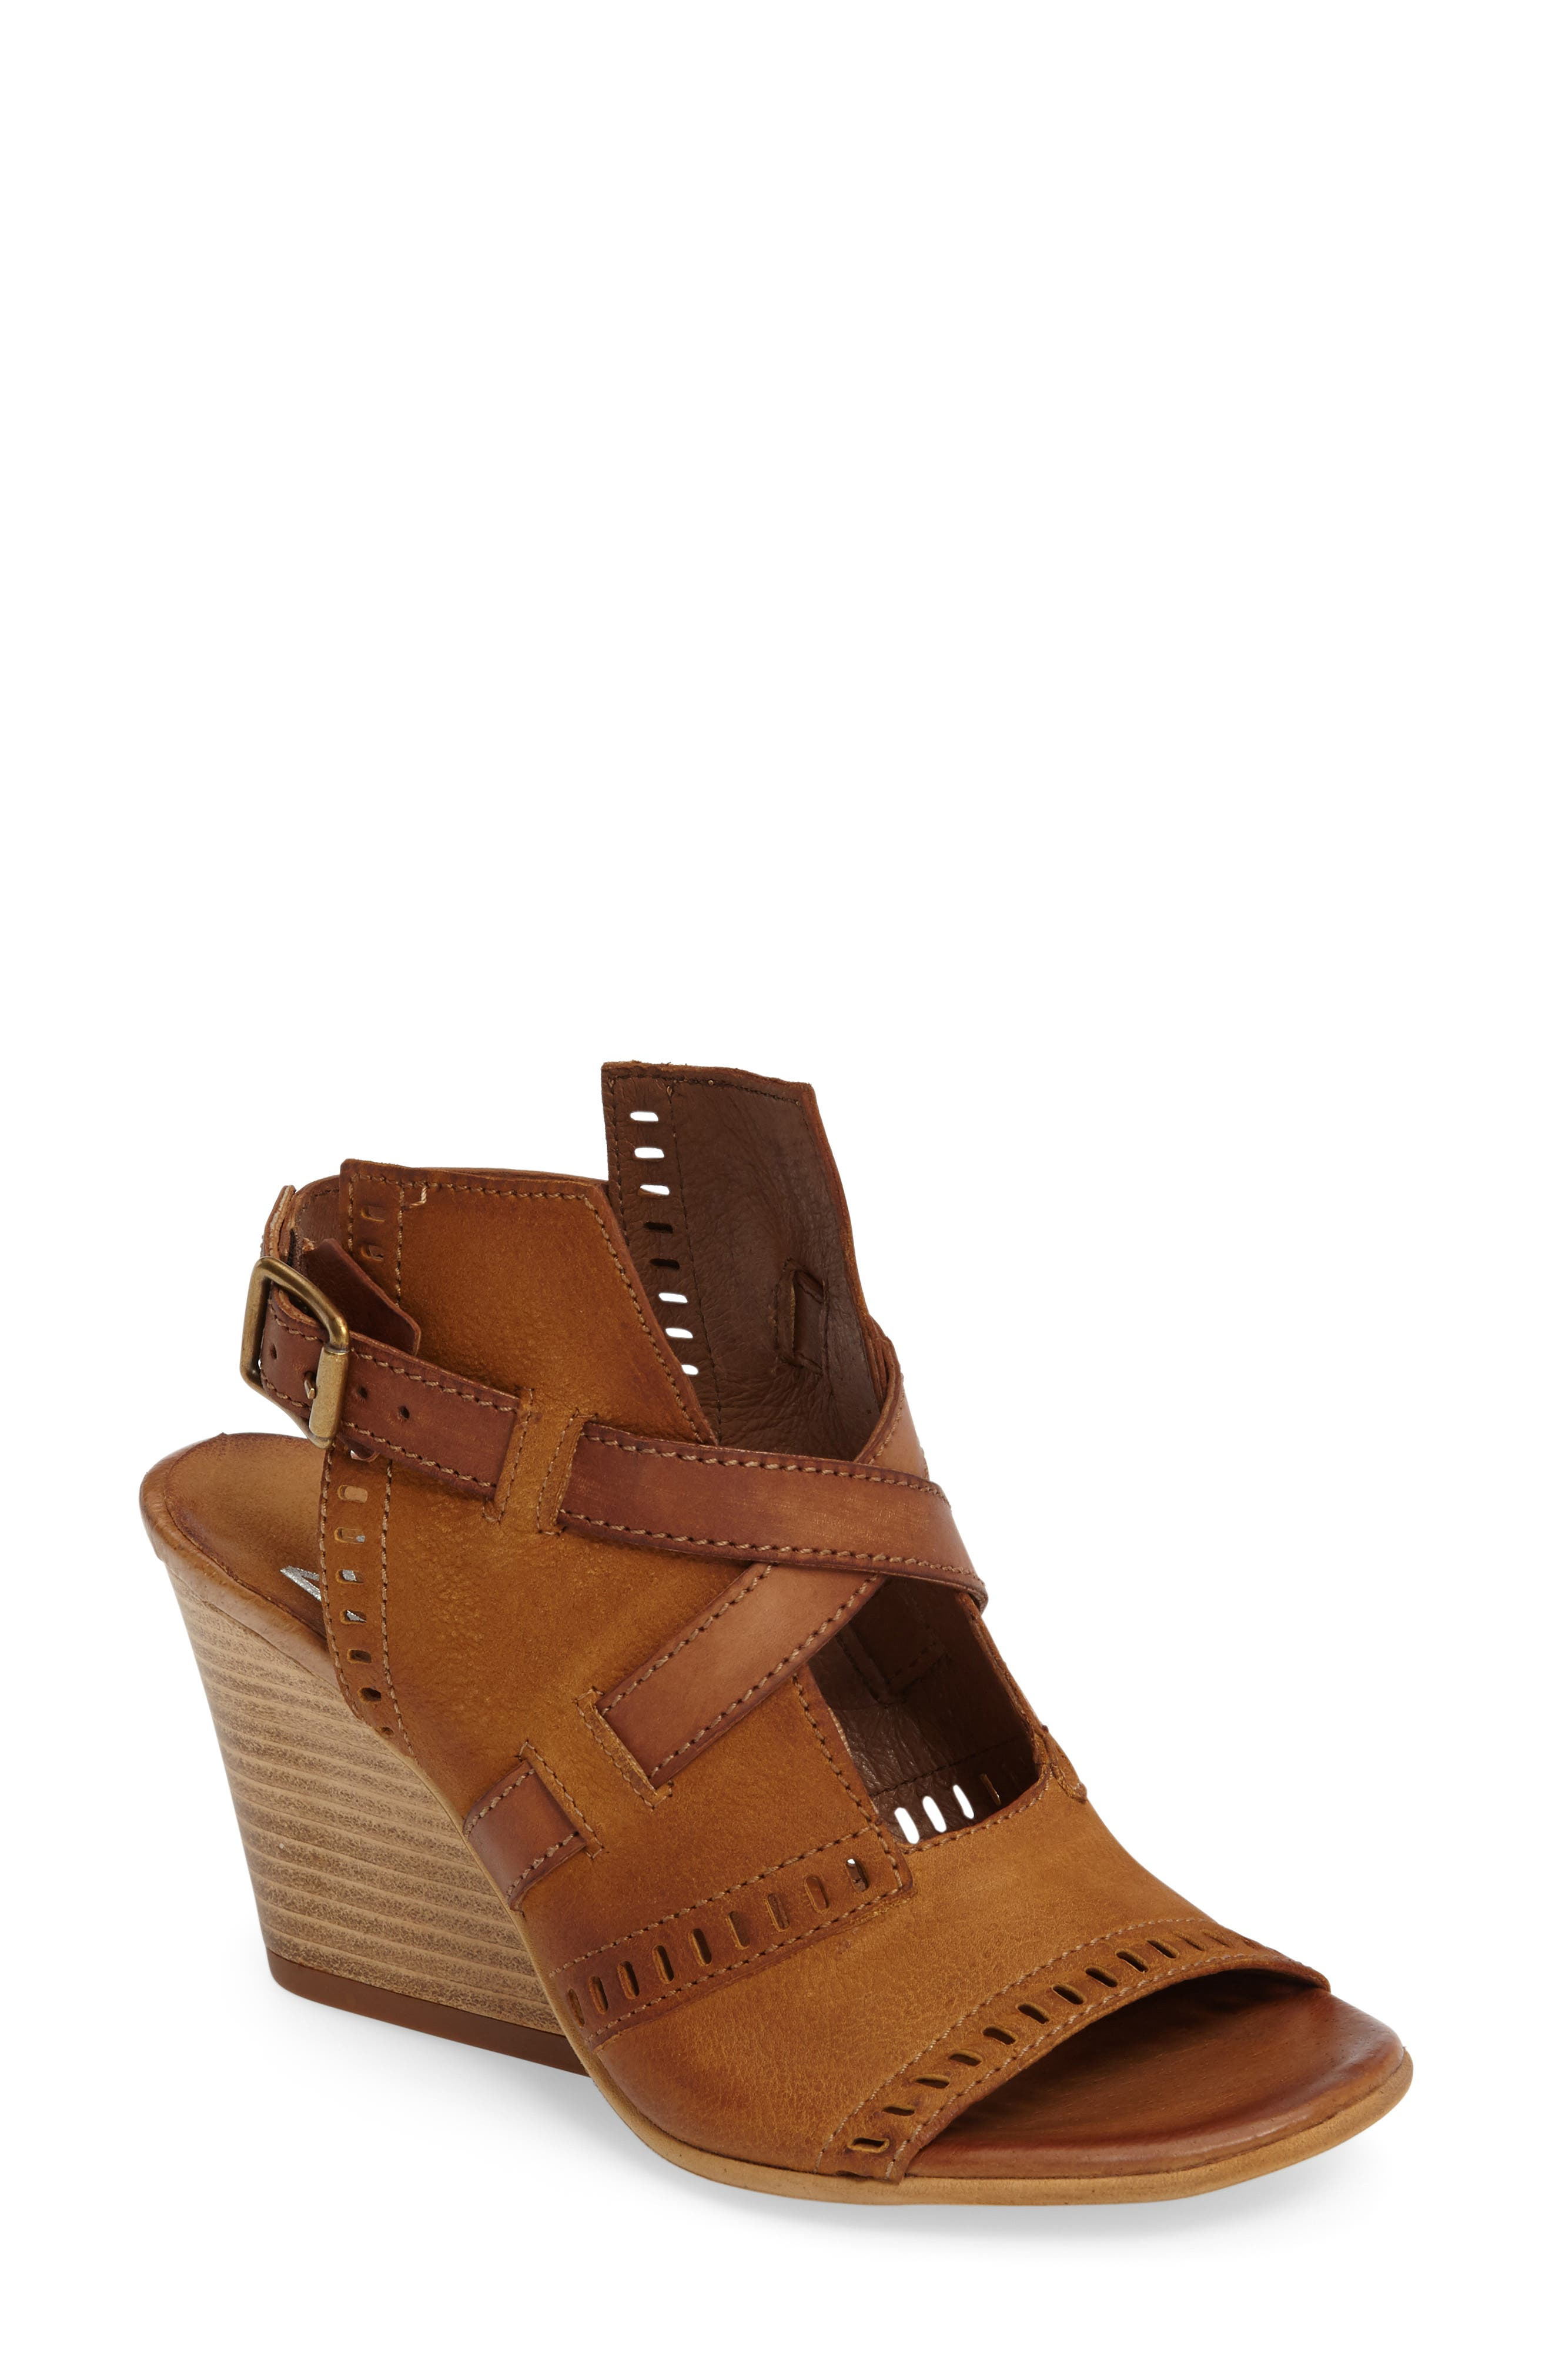 Alternate Image 1 Selected - Miz Mooz Kipling Perforated Sandal (Women)